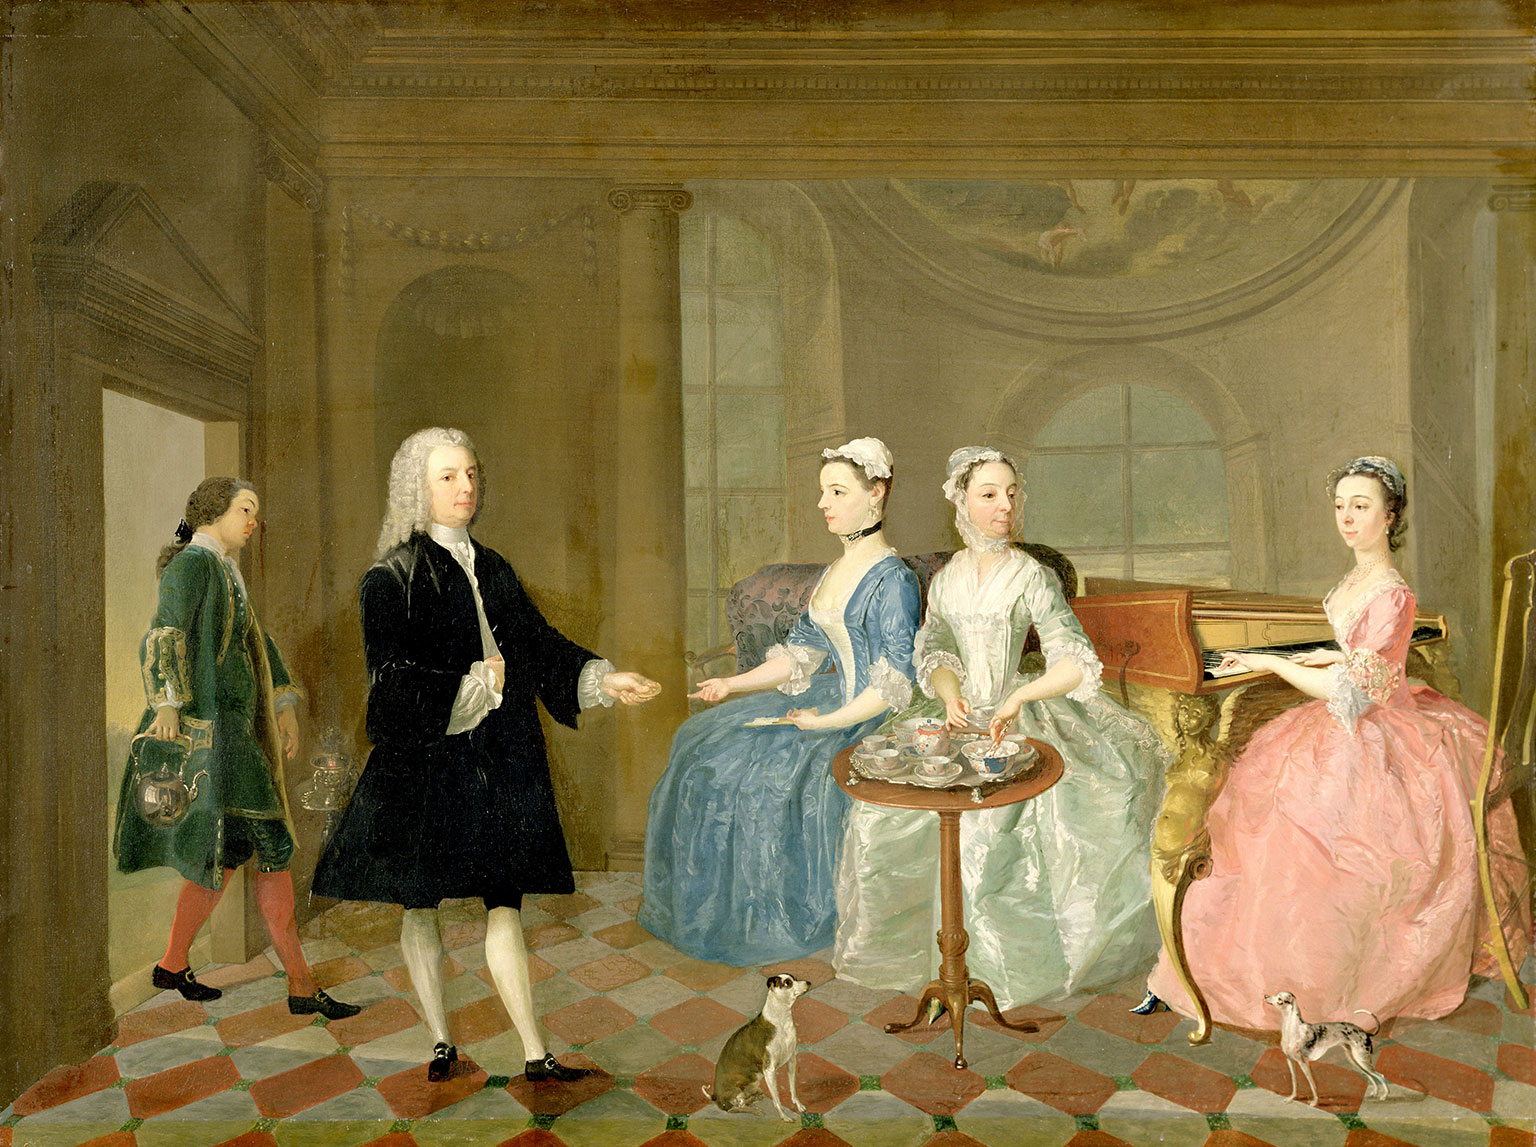 A family being served tea, c.1740 (oil on canvas), English School 18th century